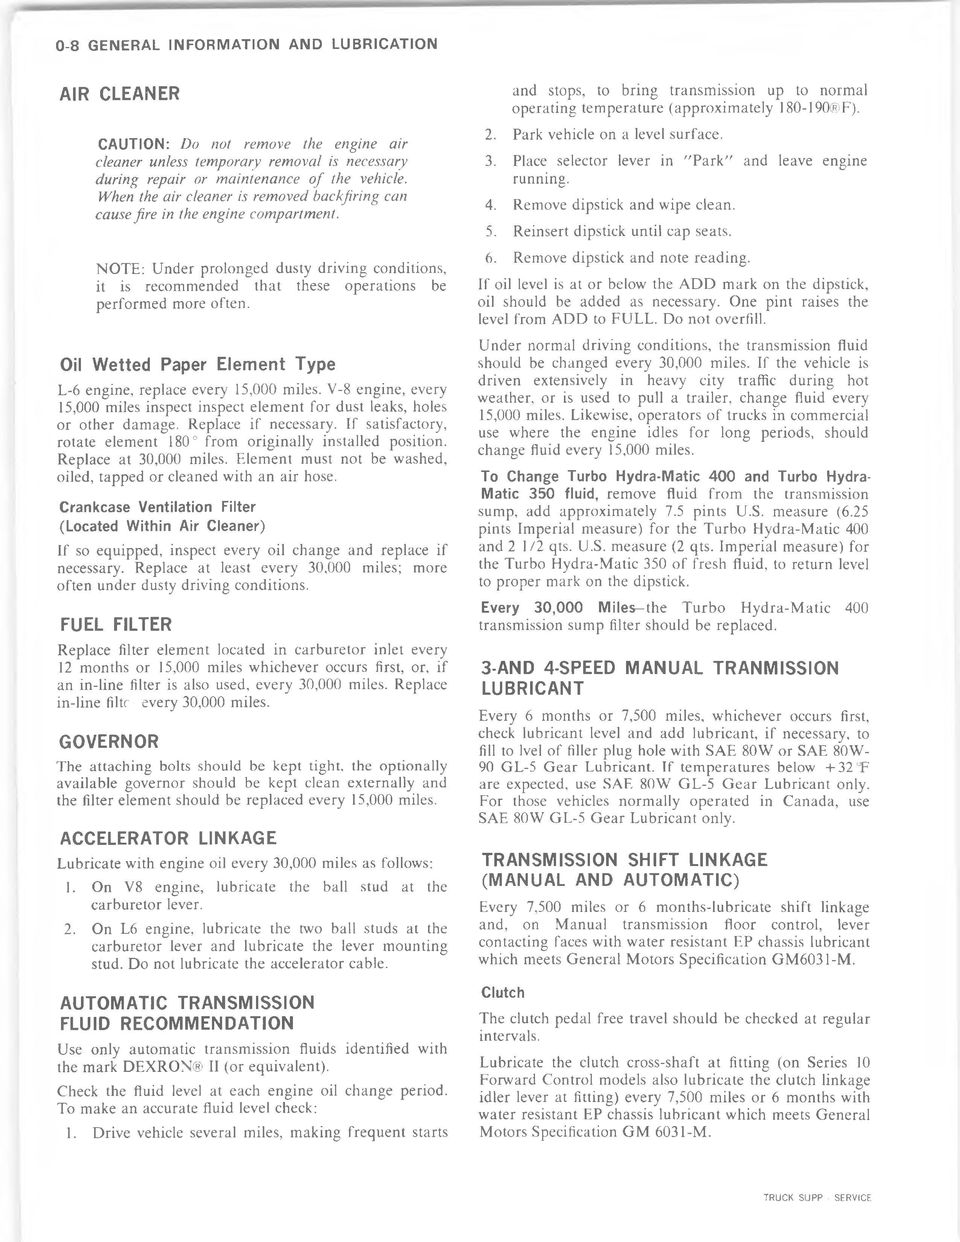 Chevrolet Light Duty Truck And Service Pdf 1998 Volvo 5 0 Gl Fuel Filter Location 011 Wetted Paper Element Type L 6 Engine Replace Every 15000 Miles V